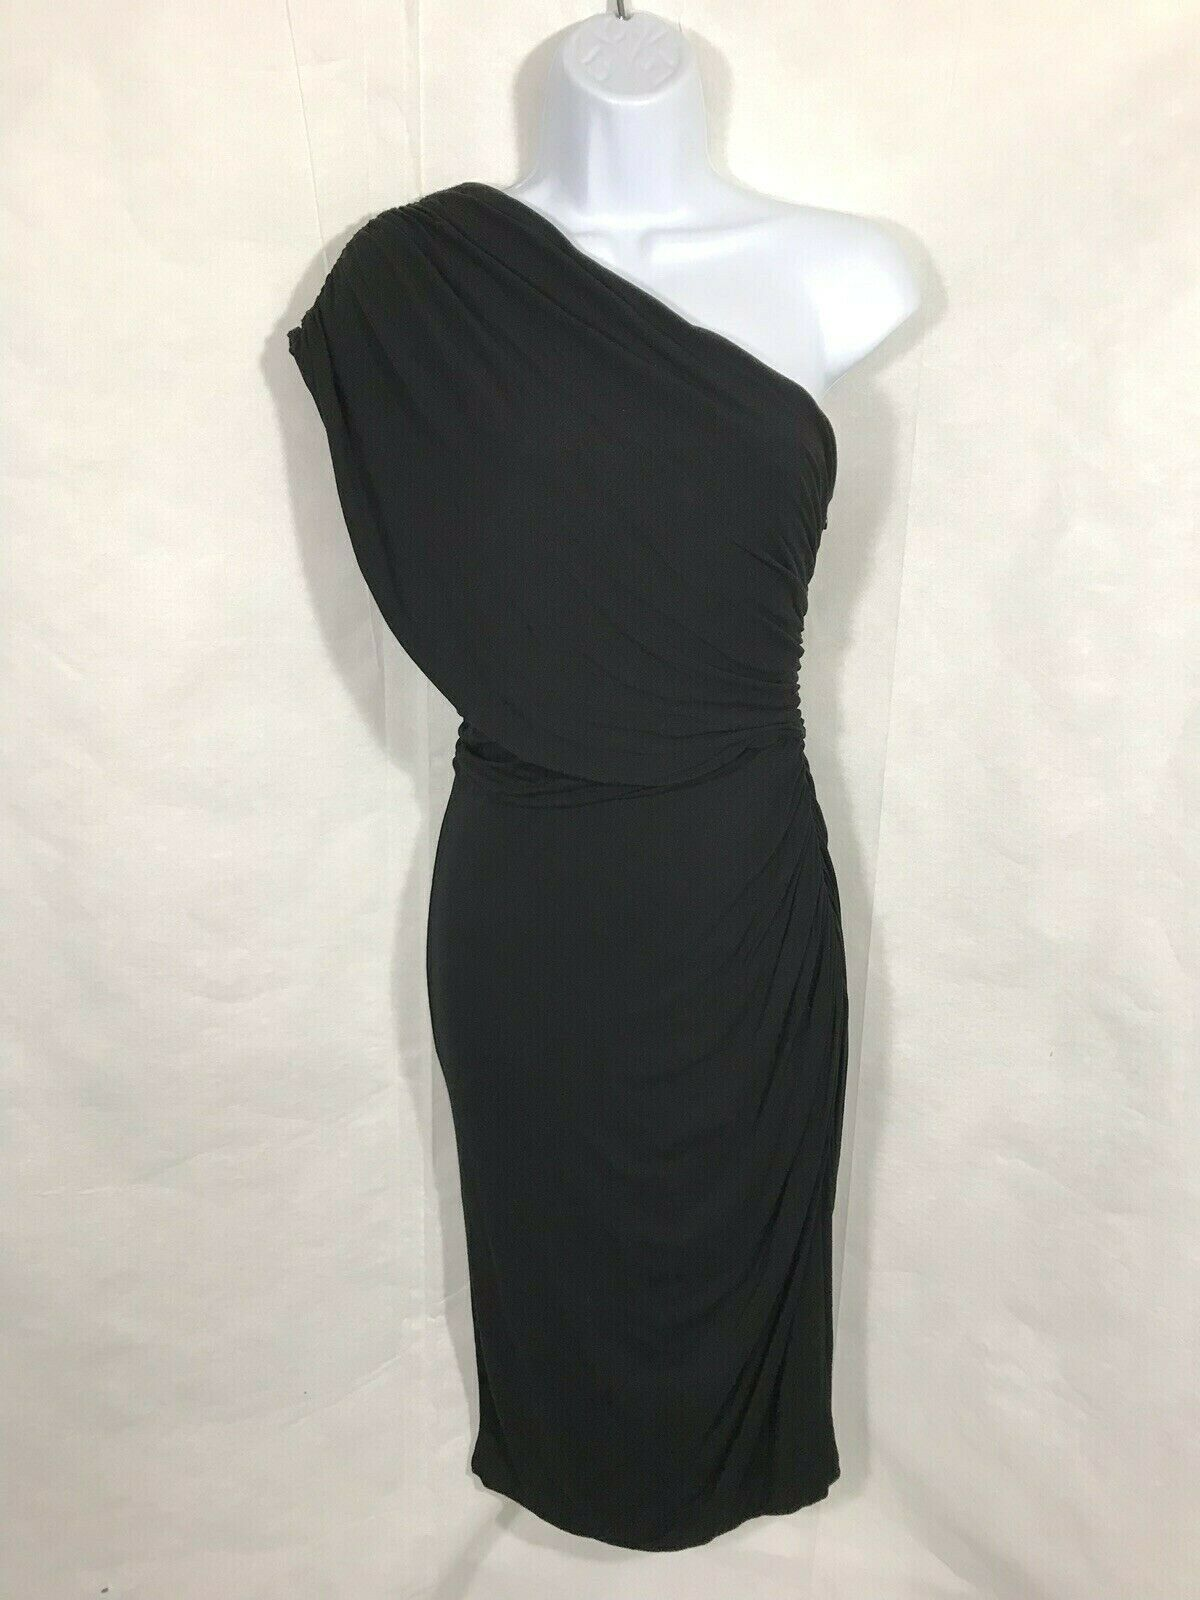 NWT Plenty by Tracy Reese Anthropologie Dropped One Shoulder Fitted Dress Size S